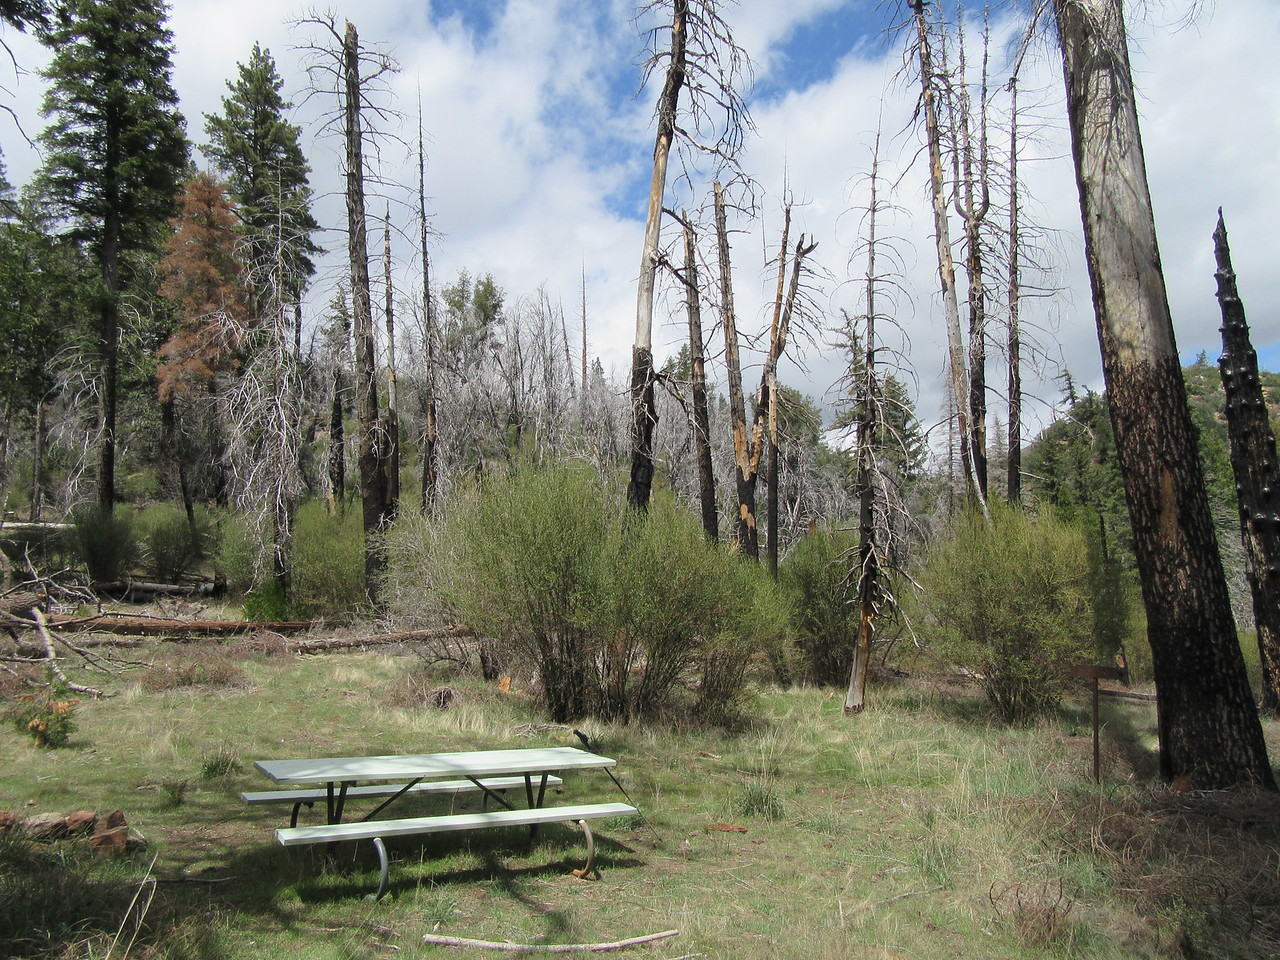 After a good climb, I arrived at Bear Camp (5138').  This use to be a great place to camp, but the Zaca fire killed many trees in the area which are now hazards doomed to ...